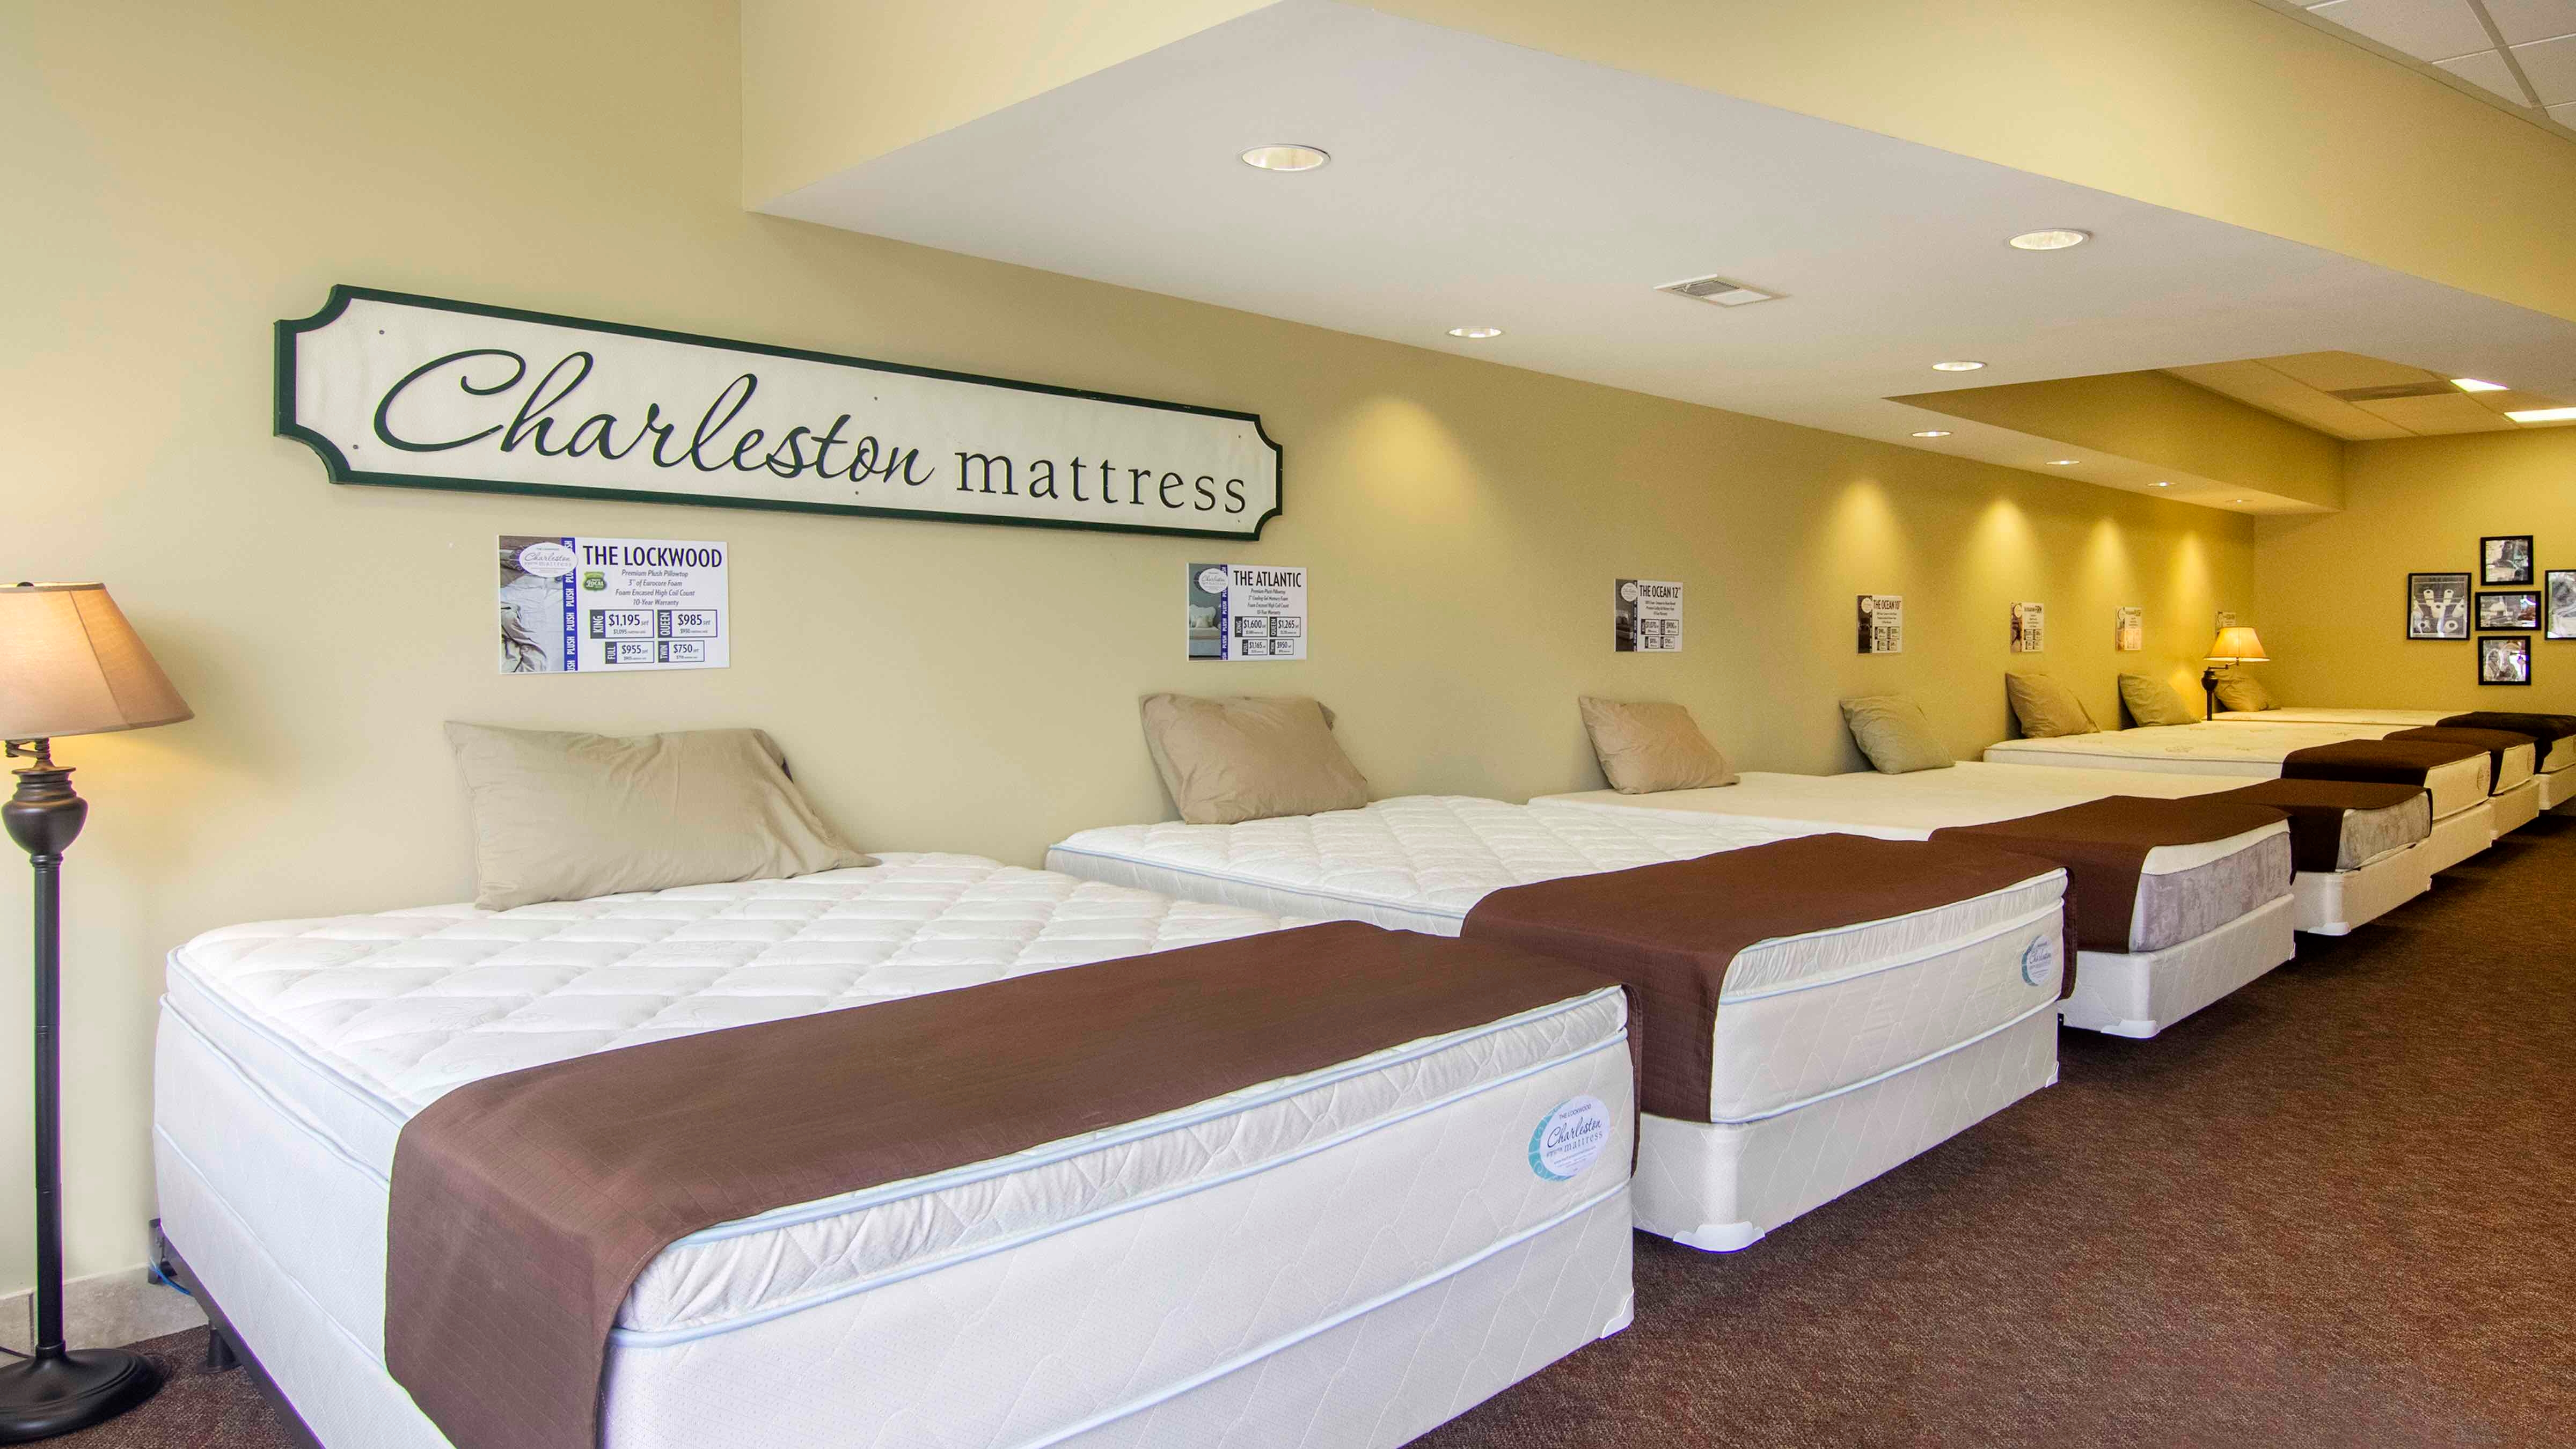 home decor outlet north charleston sc the charleston mattress 174 charleston south carolina 13280